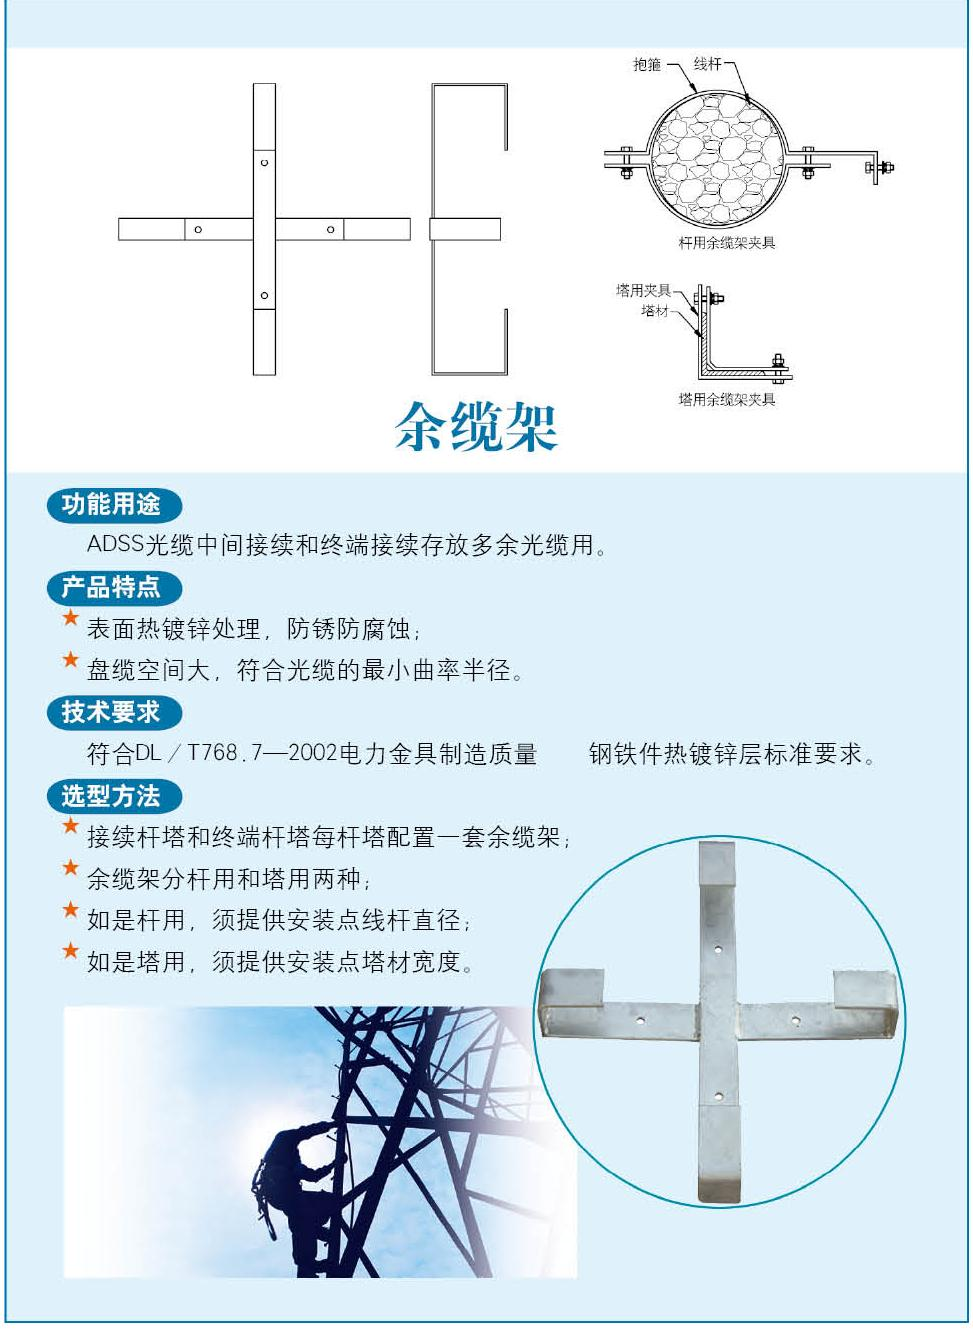 ADSS cable hardware manufacturing